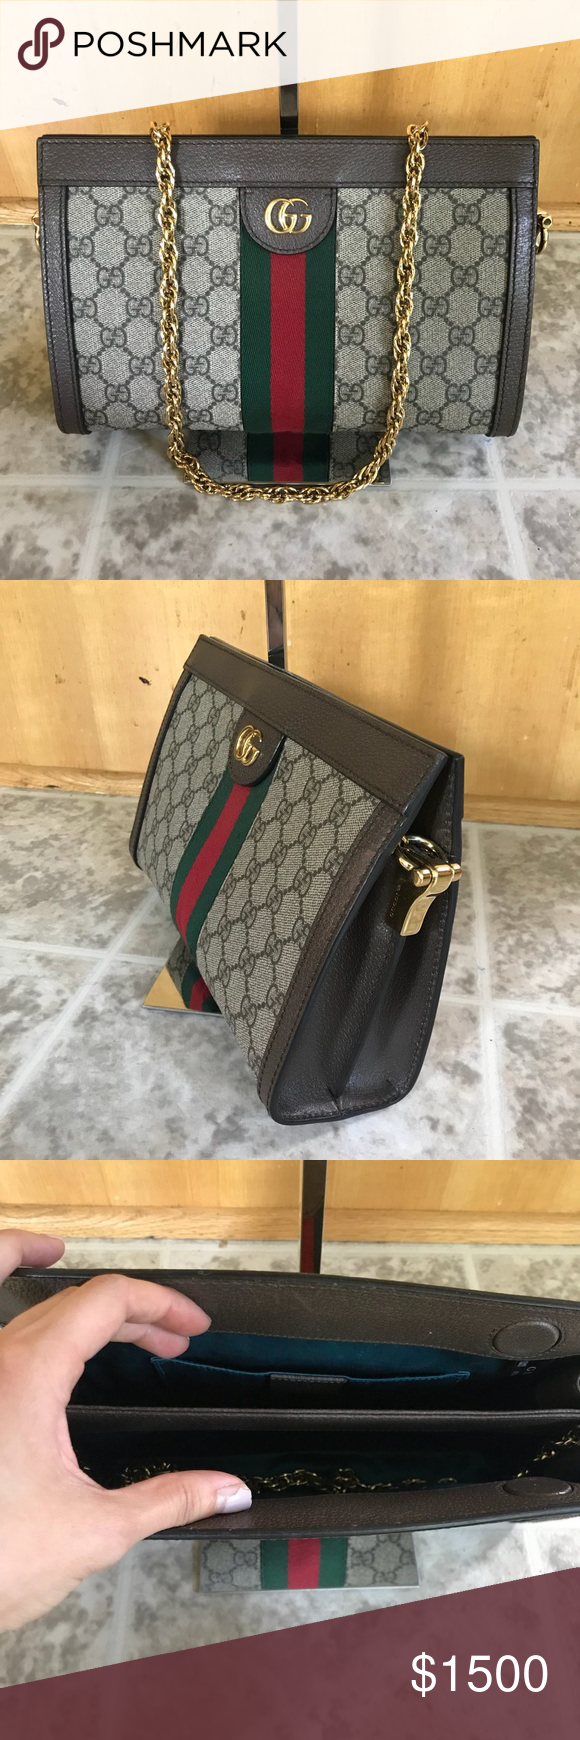 0a770a08c2376f GUCCI Ophidia Small GG Supreme Chain Shoulder Bag Authentic Gucci Linea  Dragoni Ophidia Small GG Supreme